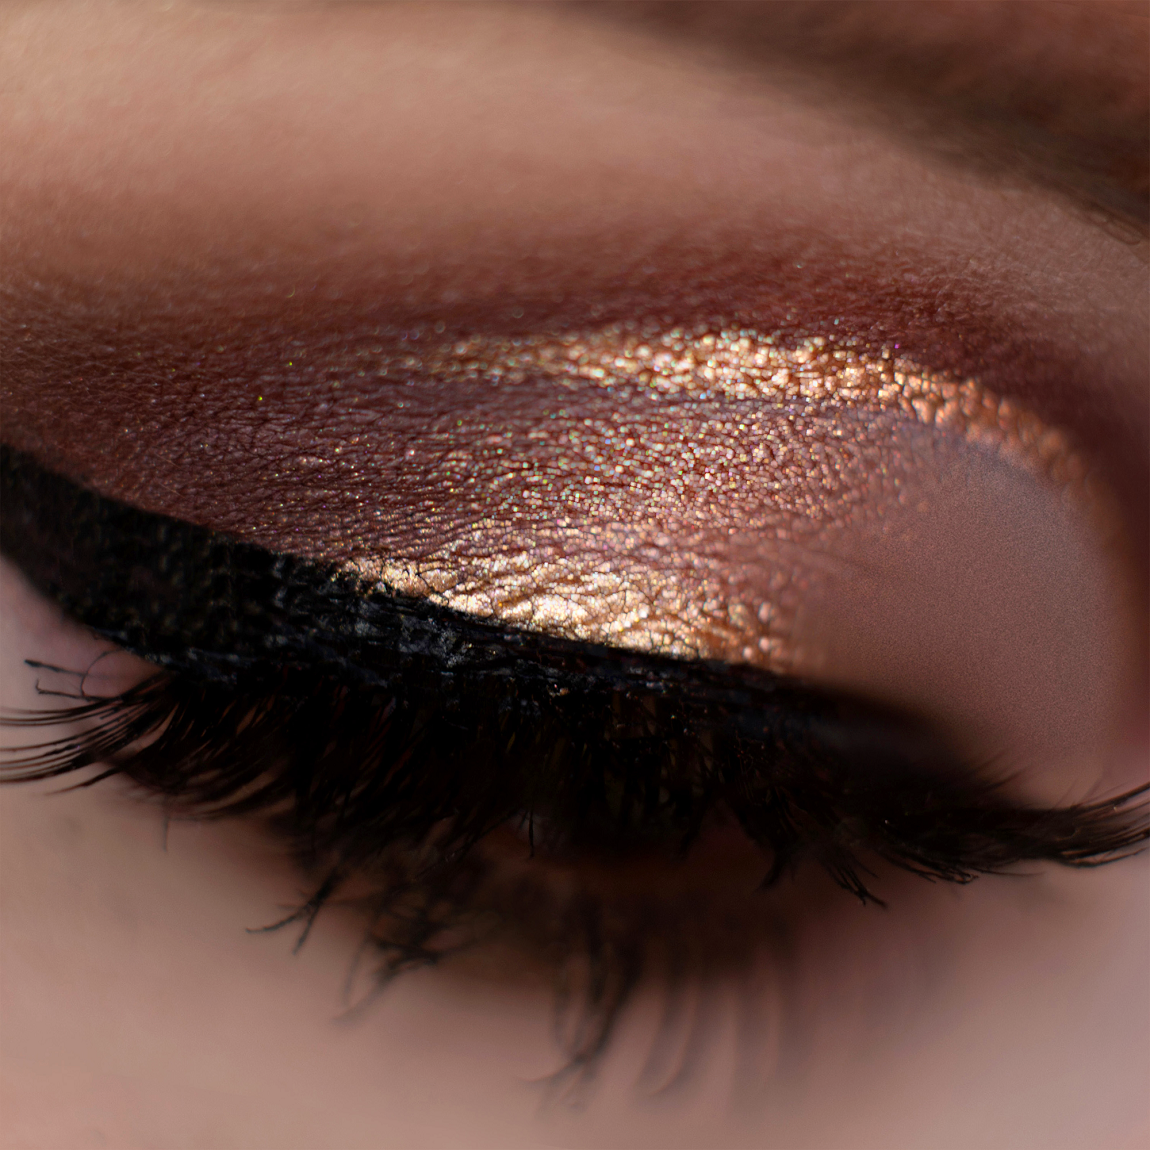 Detail illuminating eye makeup created with Neve Cosmetics pigments